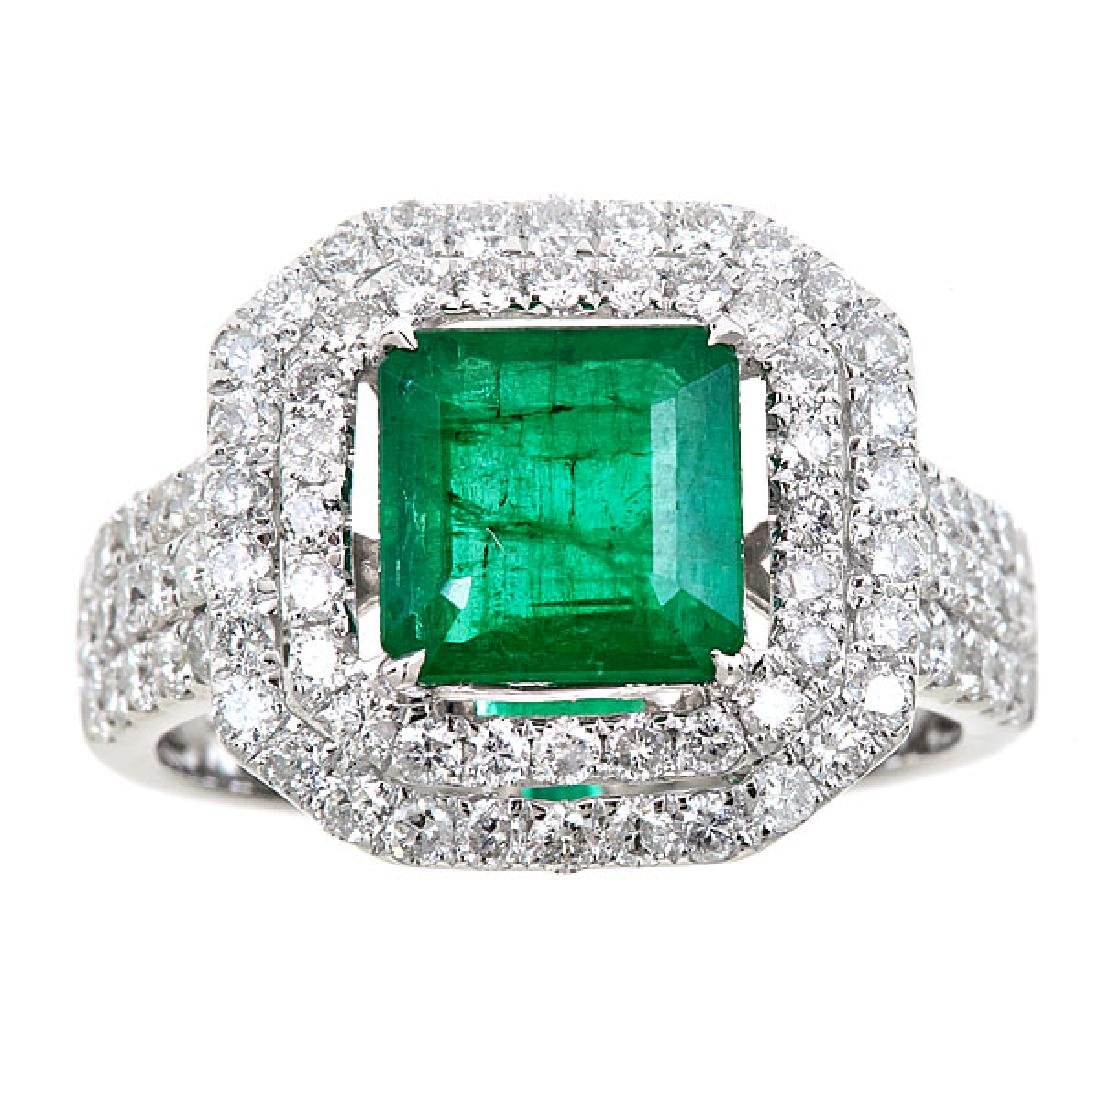 3.76 ctw Emerald and Diamond Ring - 18KT White Gold